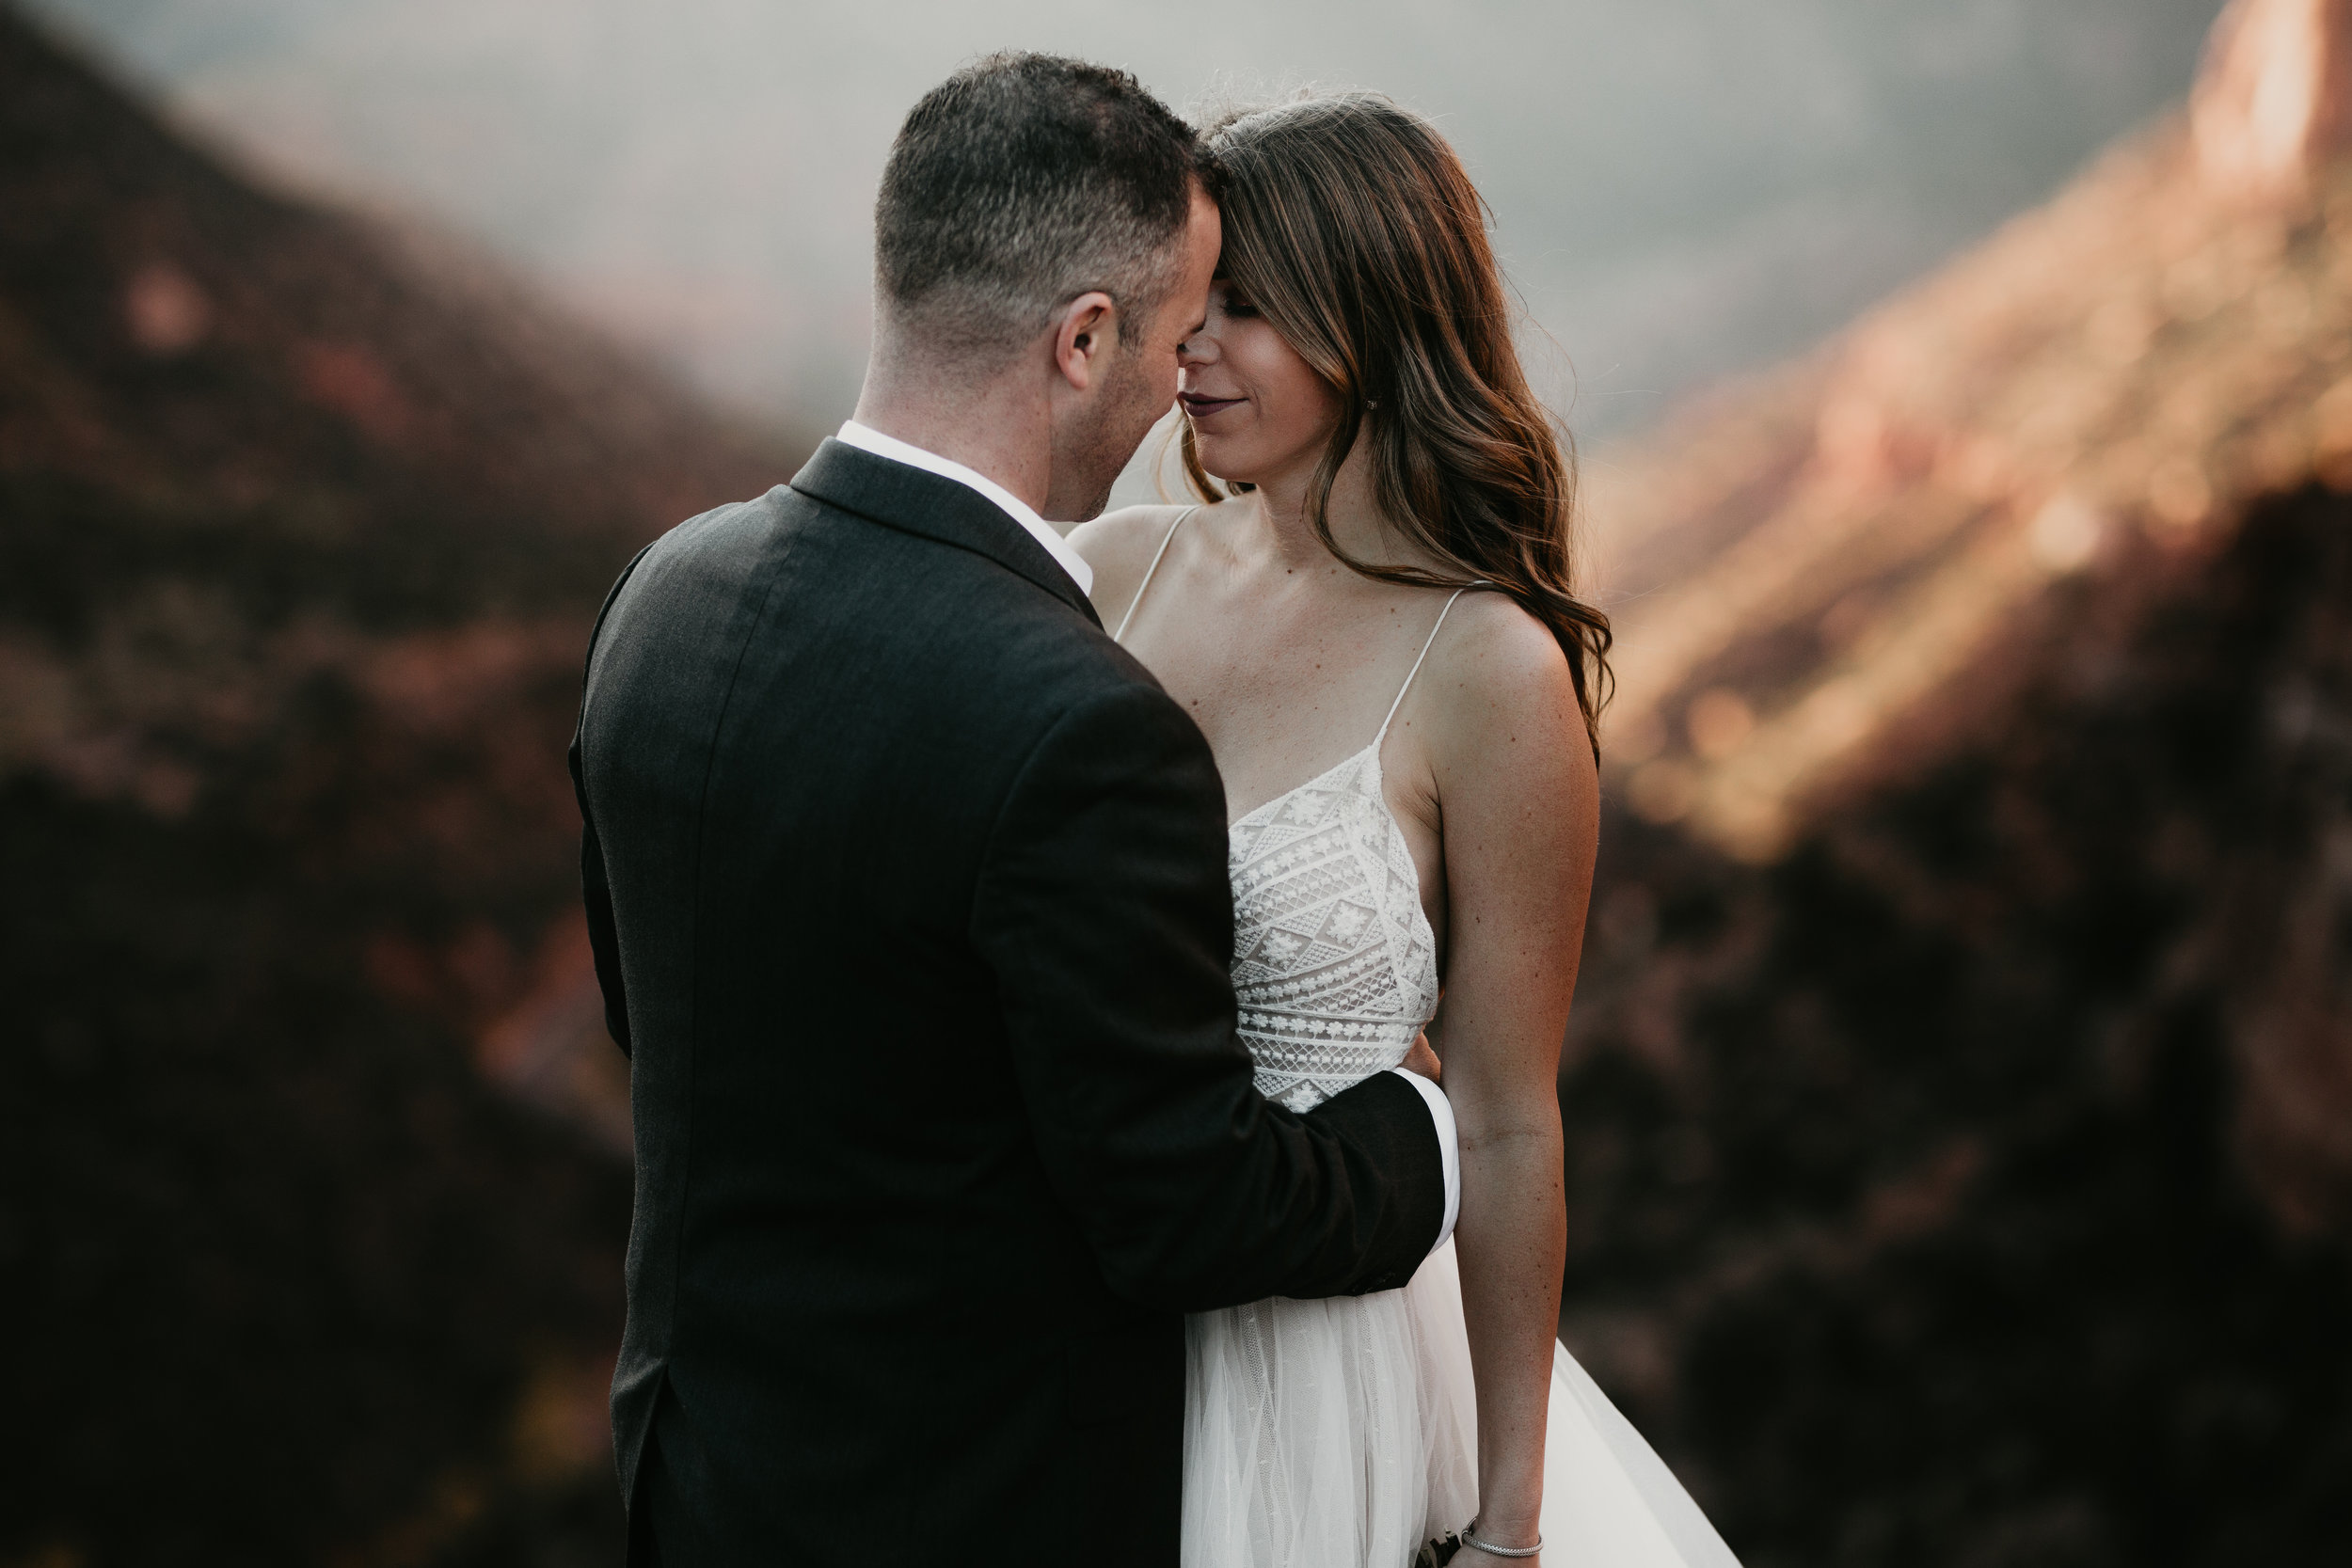 zion-national-park-elopement-photographer-adventure-adventurous-elopement-photographer-photography-in-national-parks-utah-red-rock-sunset-canyon-trail-destination-intimate-wedding-photos-17.jpg